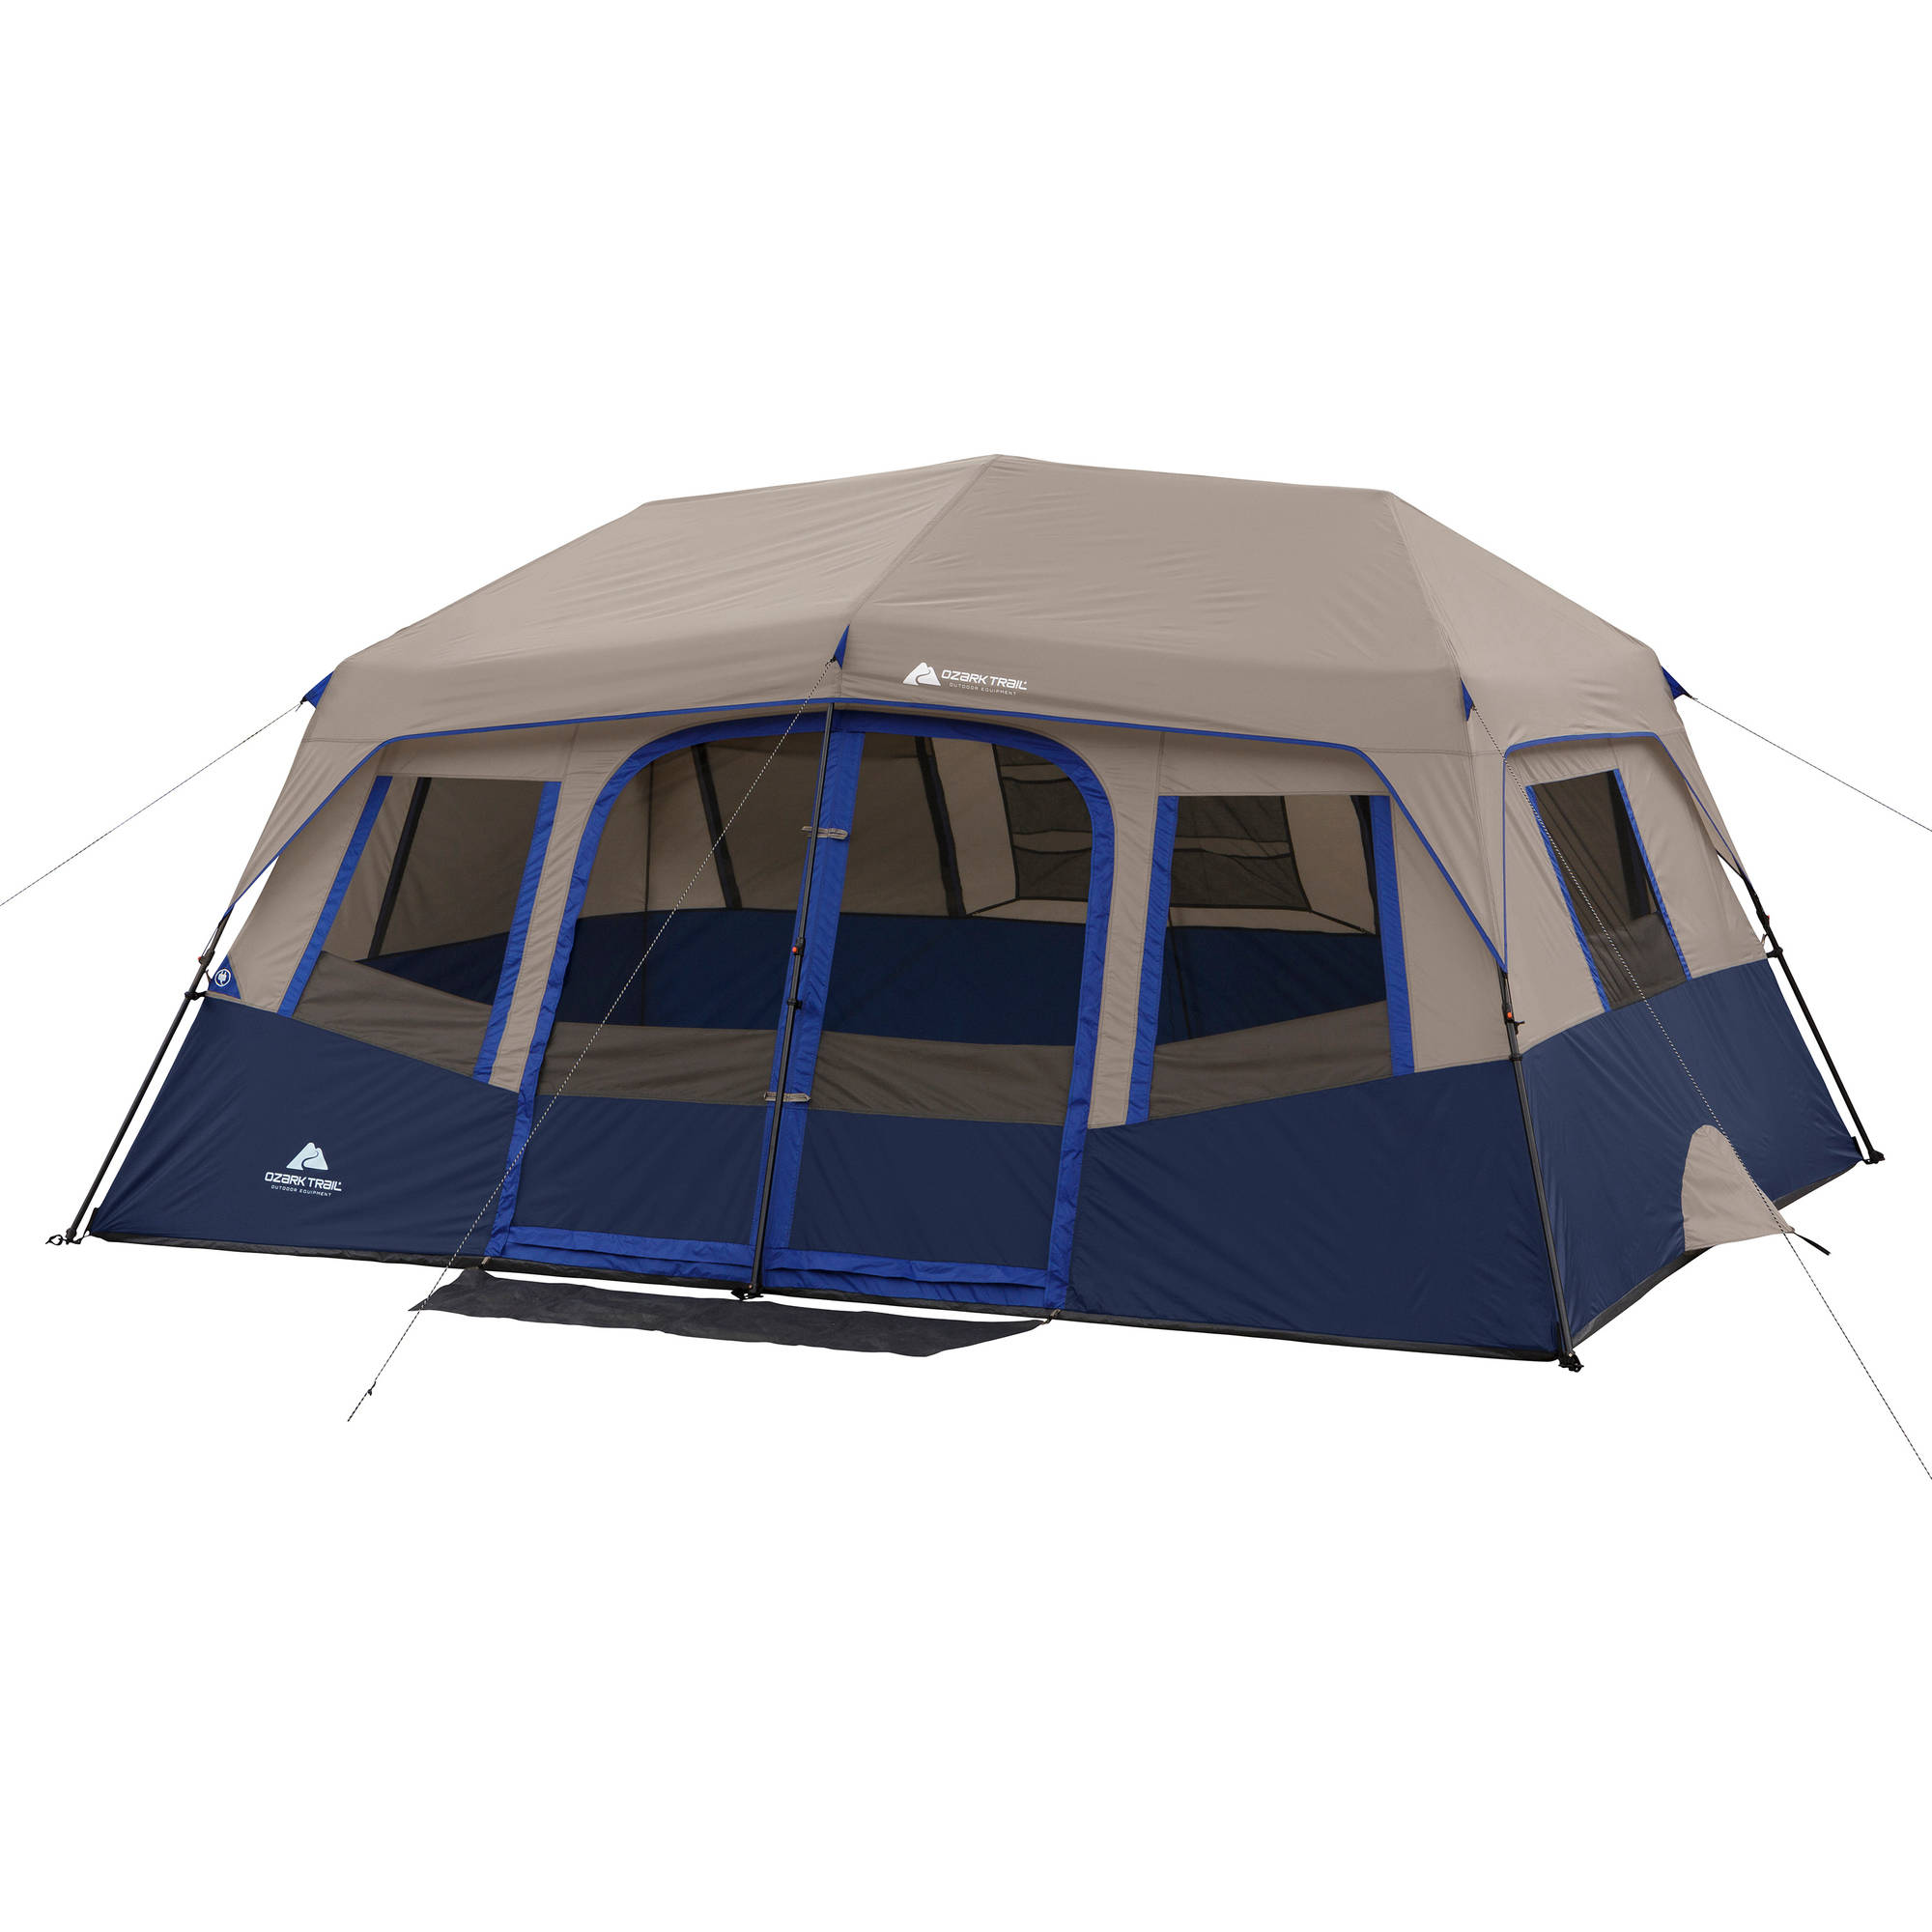 Ozark Trail 10 Person 2 Room Instant Cabin Tent  sc 1 st  Walmart.com & Ozark Trail 10 Person 2 Room Instant Cabin Tent - Walmart.com